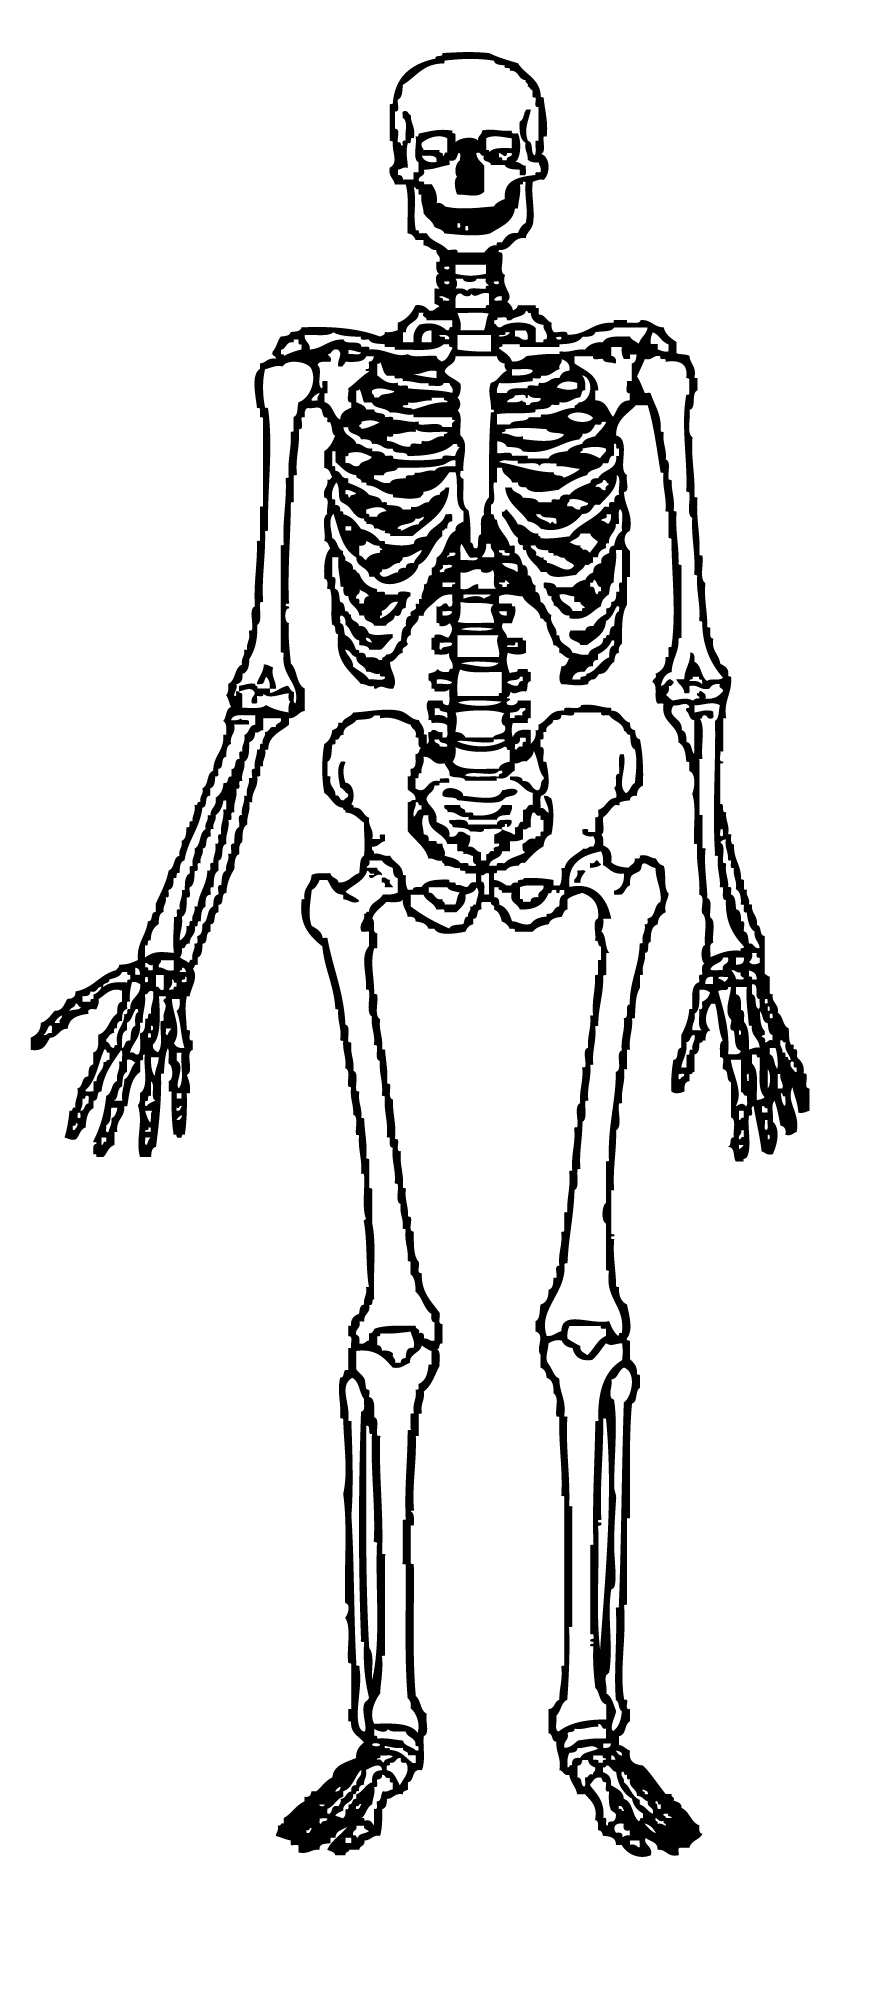 Clipart skeleton. Free clip art pictures